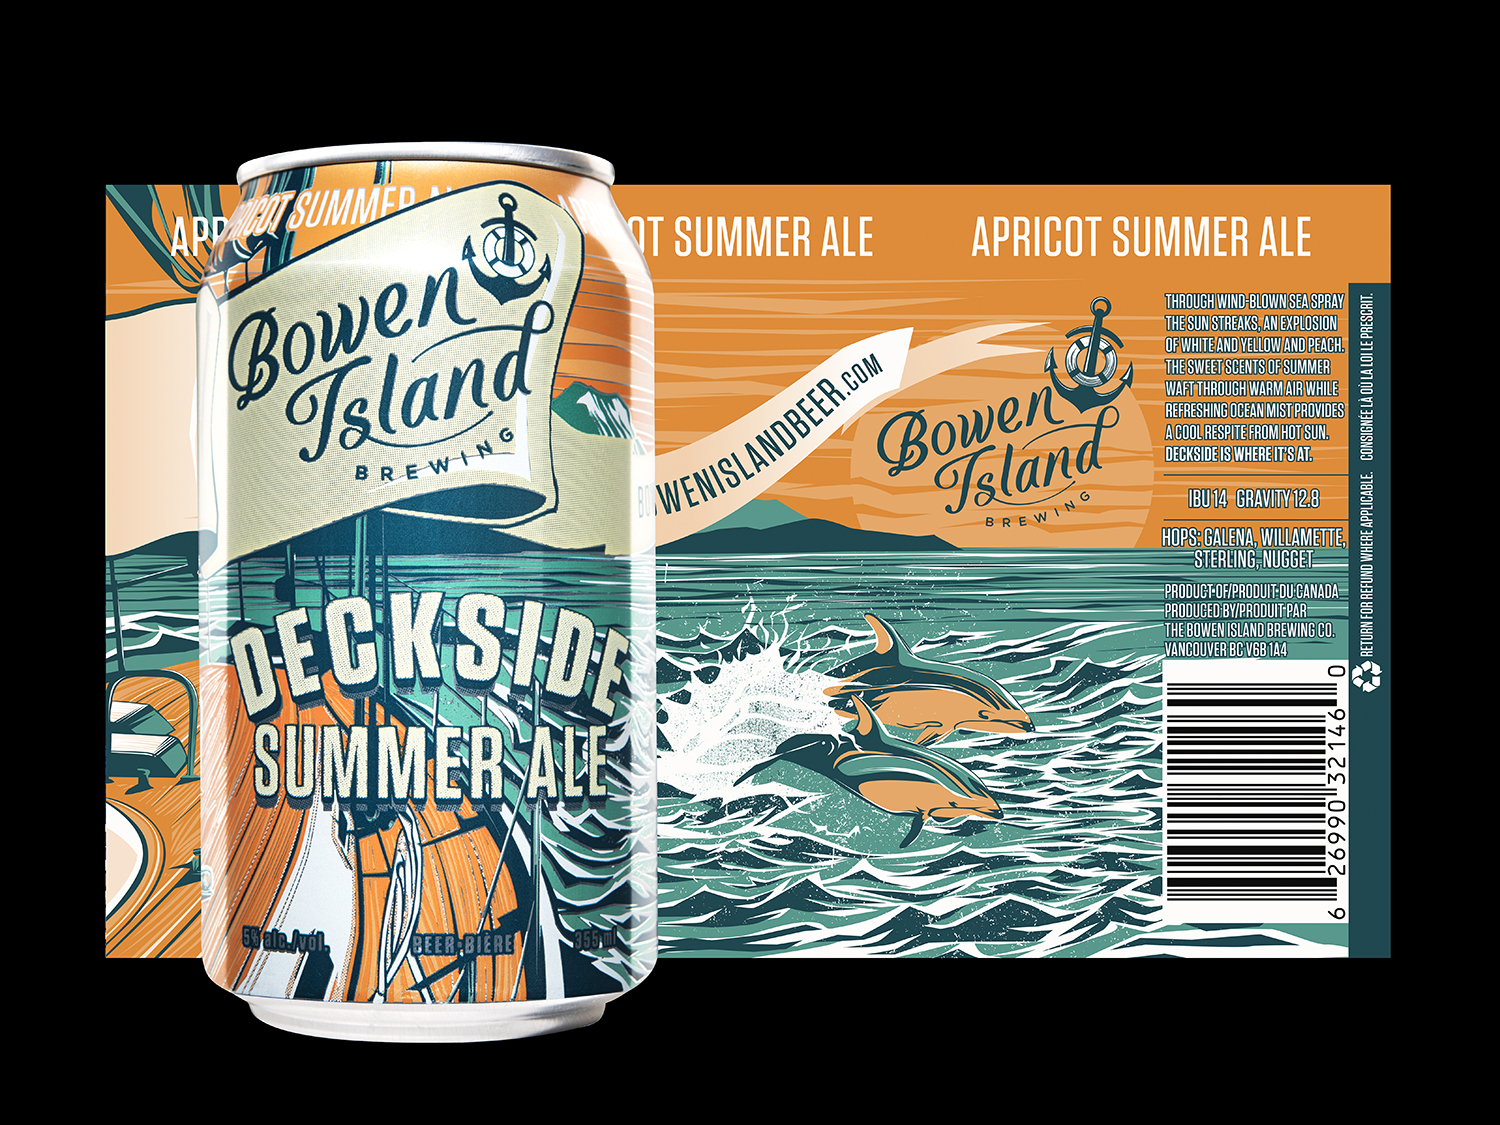 Branding and Packaging Design for Bowen Island Brewing